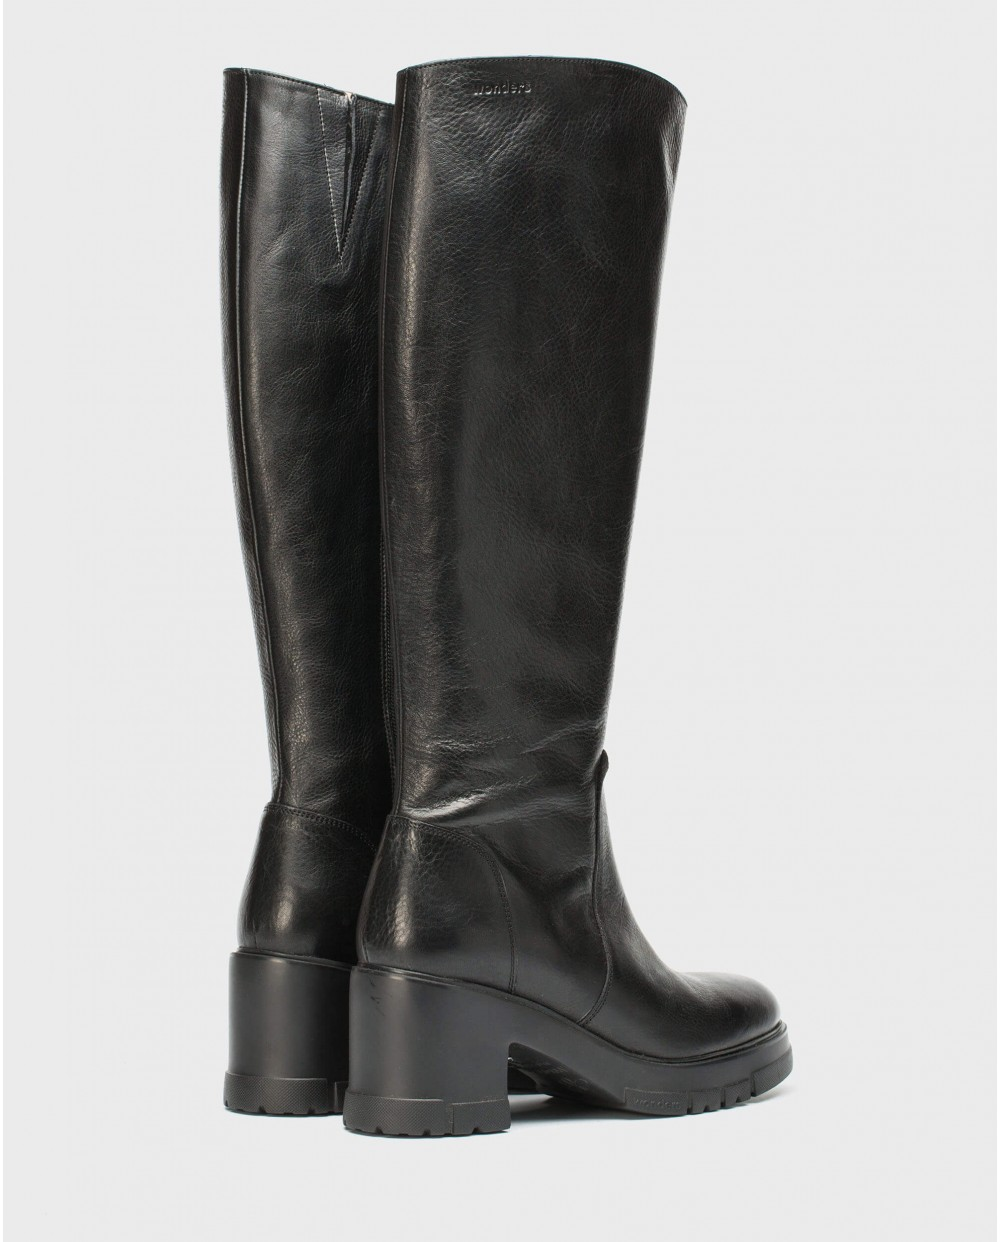 Wonders-Boots-Black leather boot with track sole